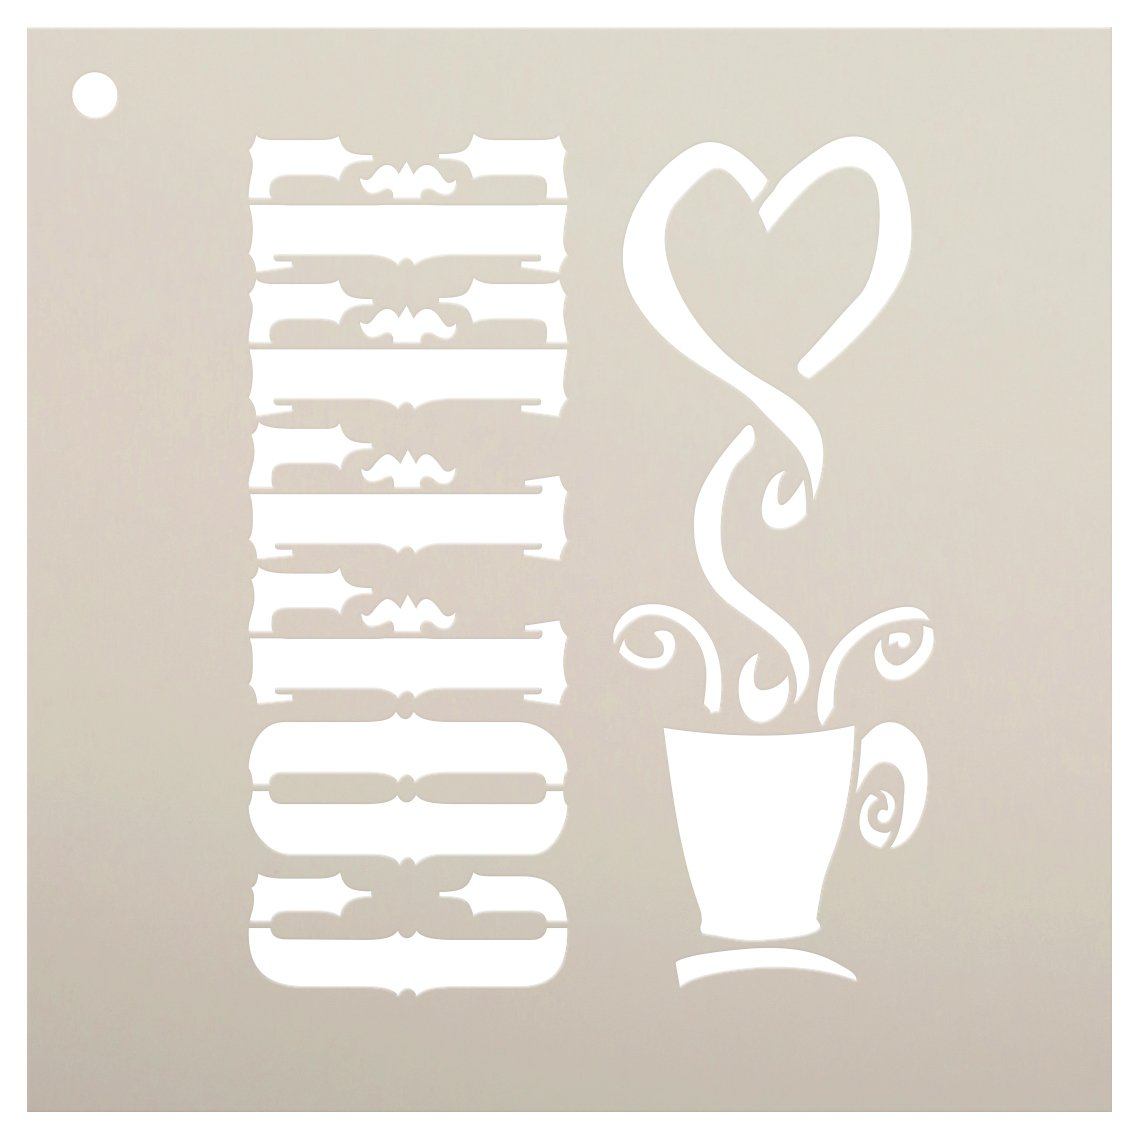 Coffee Stencil by StudioR12 | Love Coffee Word Art - Reusable Mylar Template | Painting, Chalk, Mixed Media | Use for Journaling, DIY Home Decor - STCL815